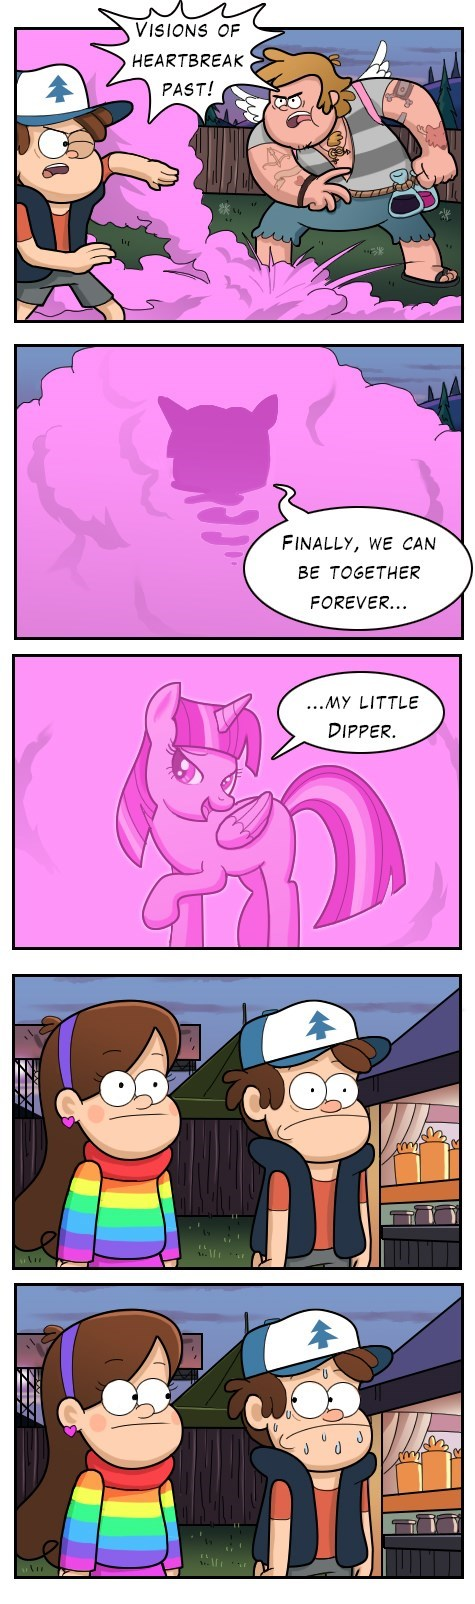 brony,comics,gravity falls,Heartbreaking Tearjerker